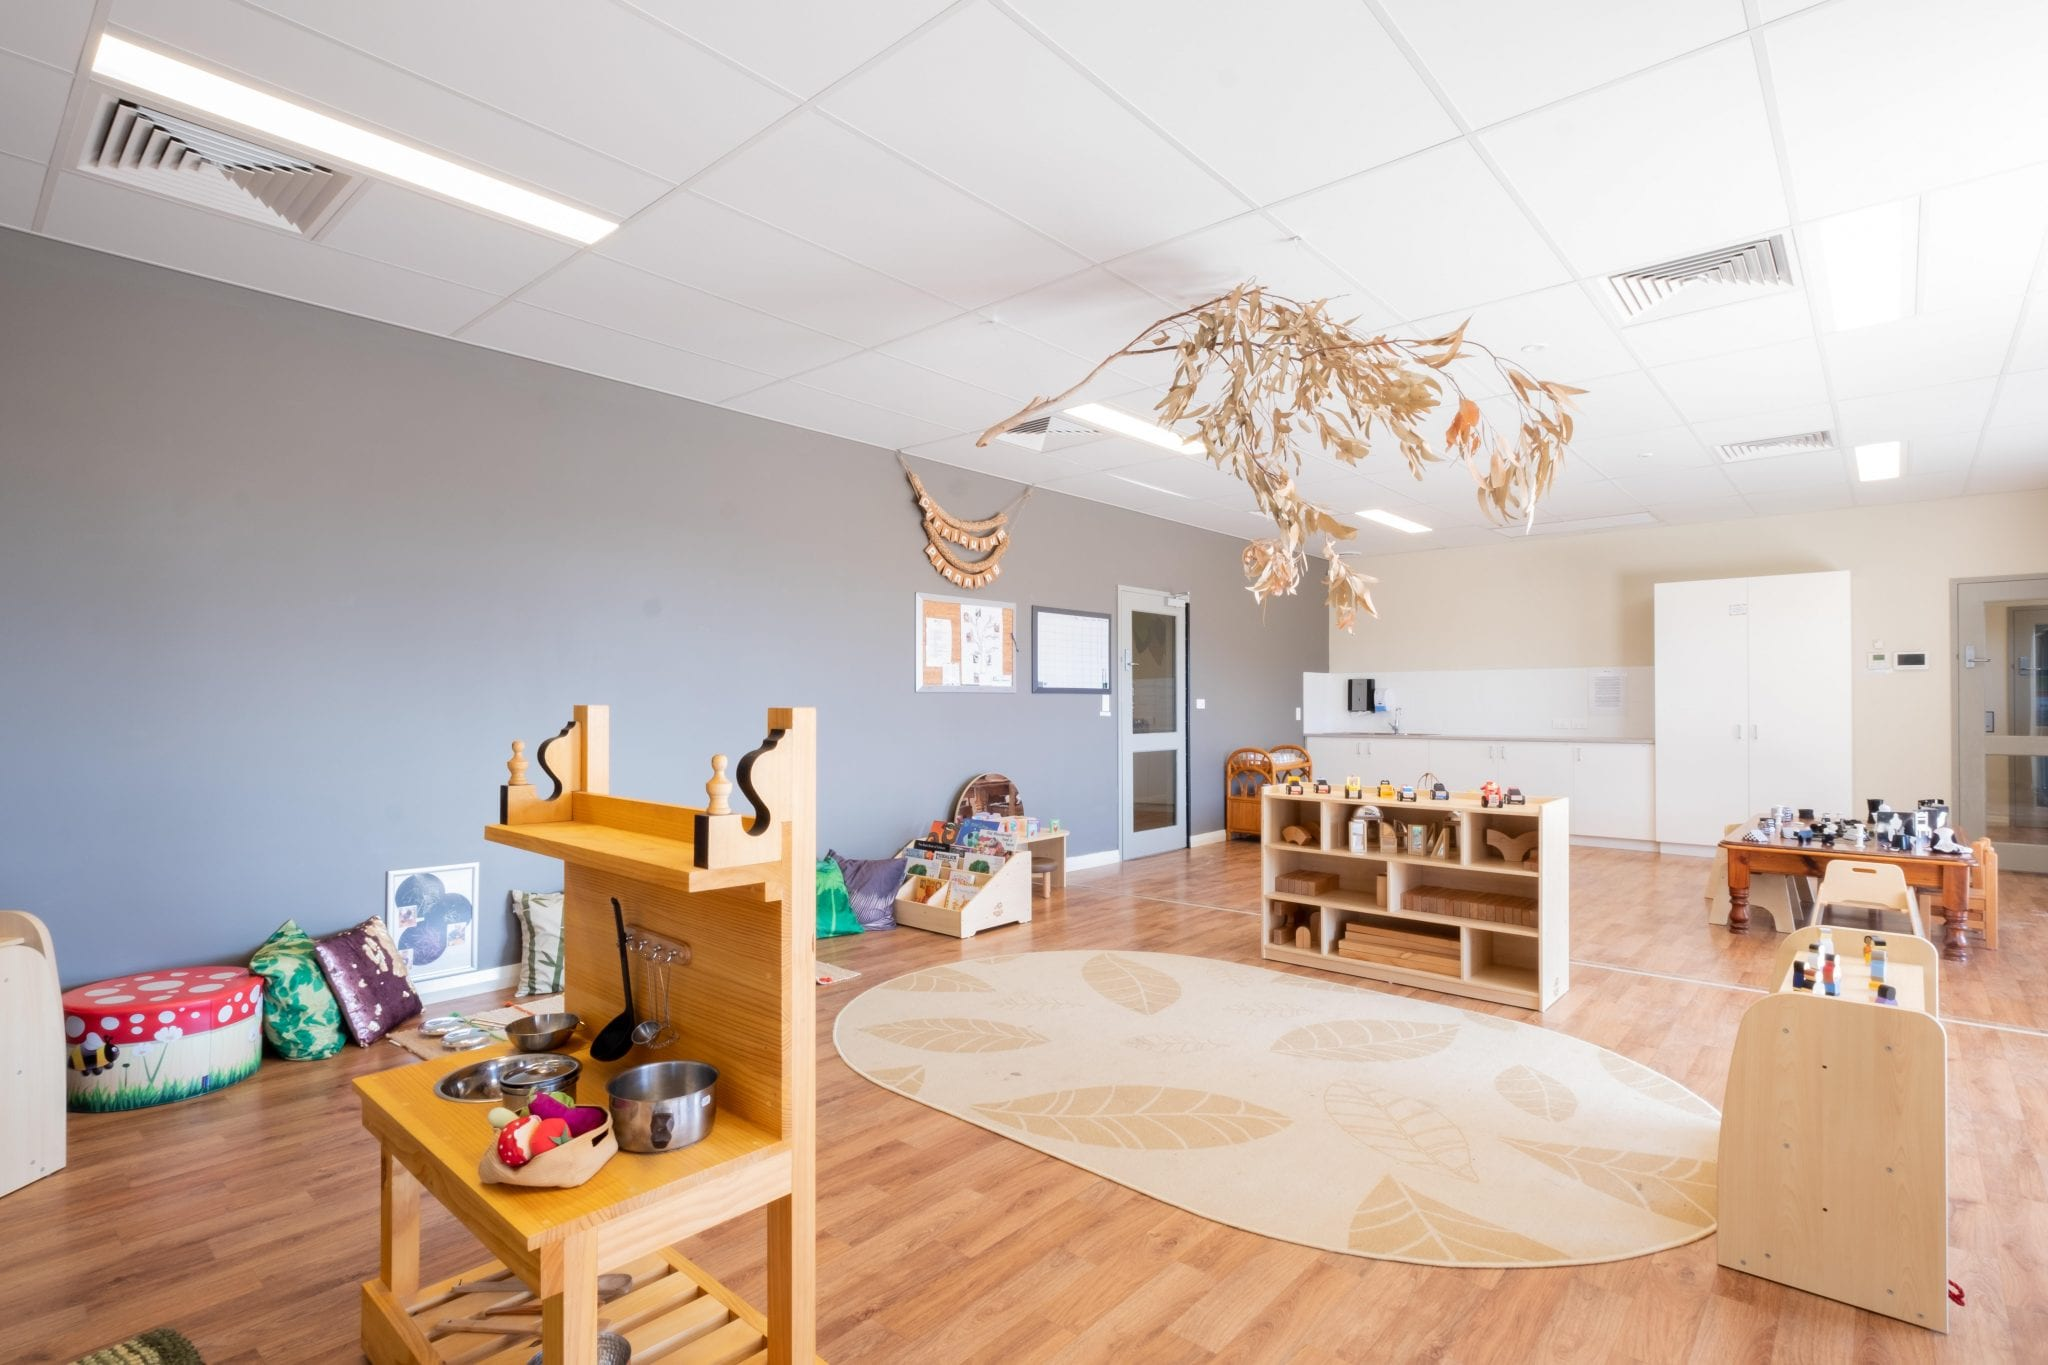 Toddler indoor environment with wooden furniture and play kitchen at keiki early learning trinity alkimos